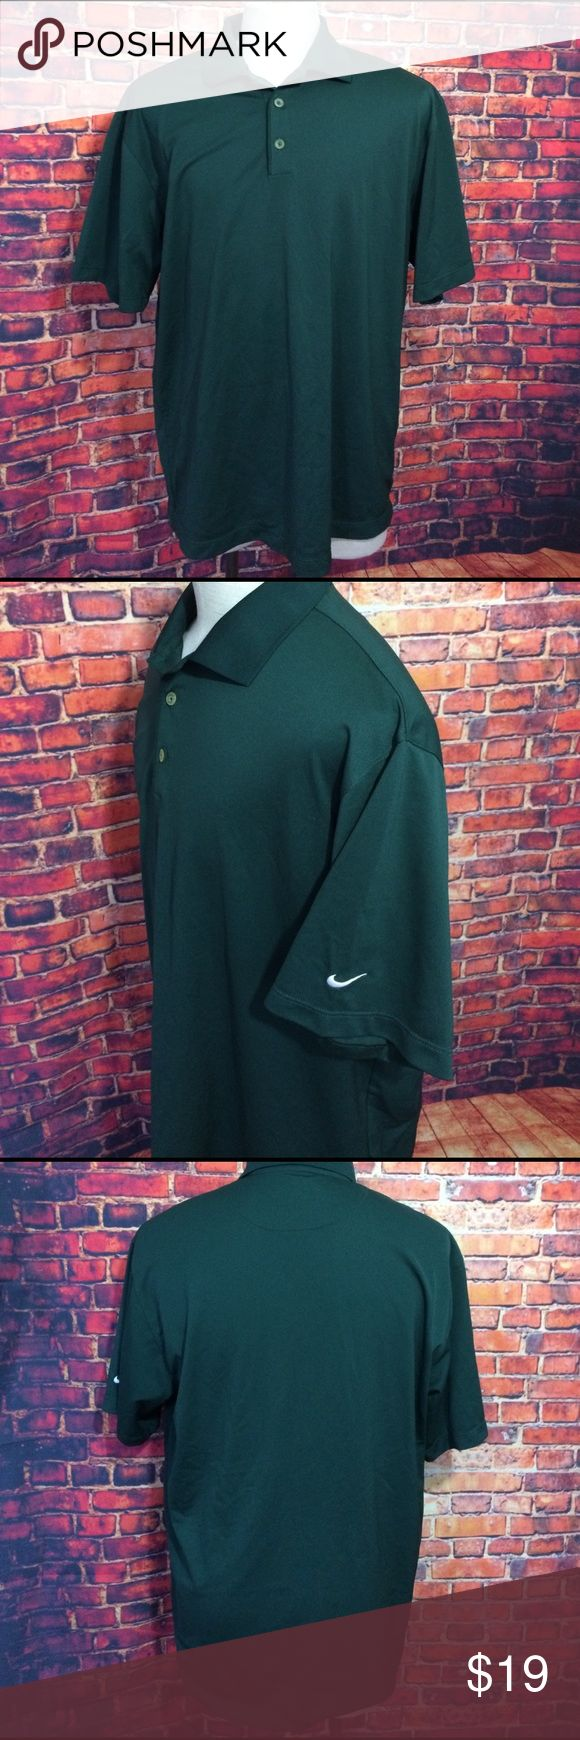 Nike Golf 🏌 Green Polo Shirt XL Nike Golf 🏌 Green Polo Shirt XL Nike Shirts Polos